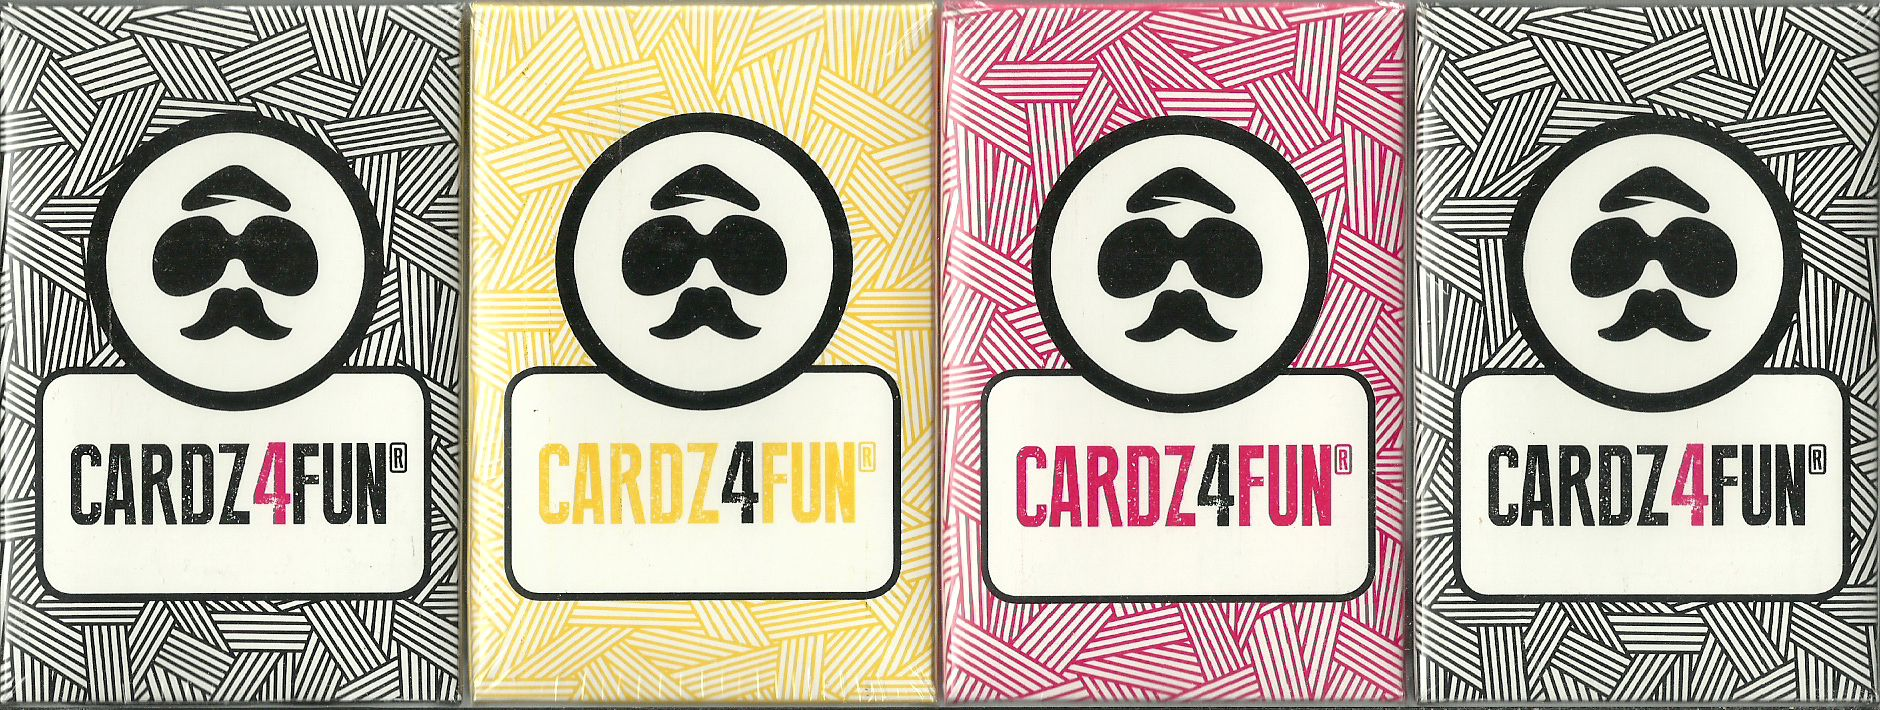 SPILLEKORT_CARDS-4-FUN1880x710